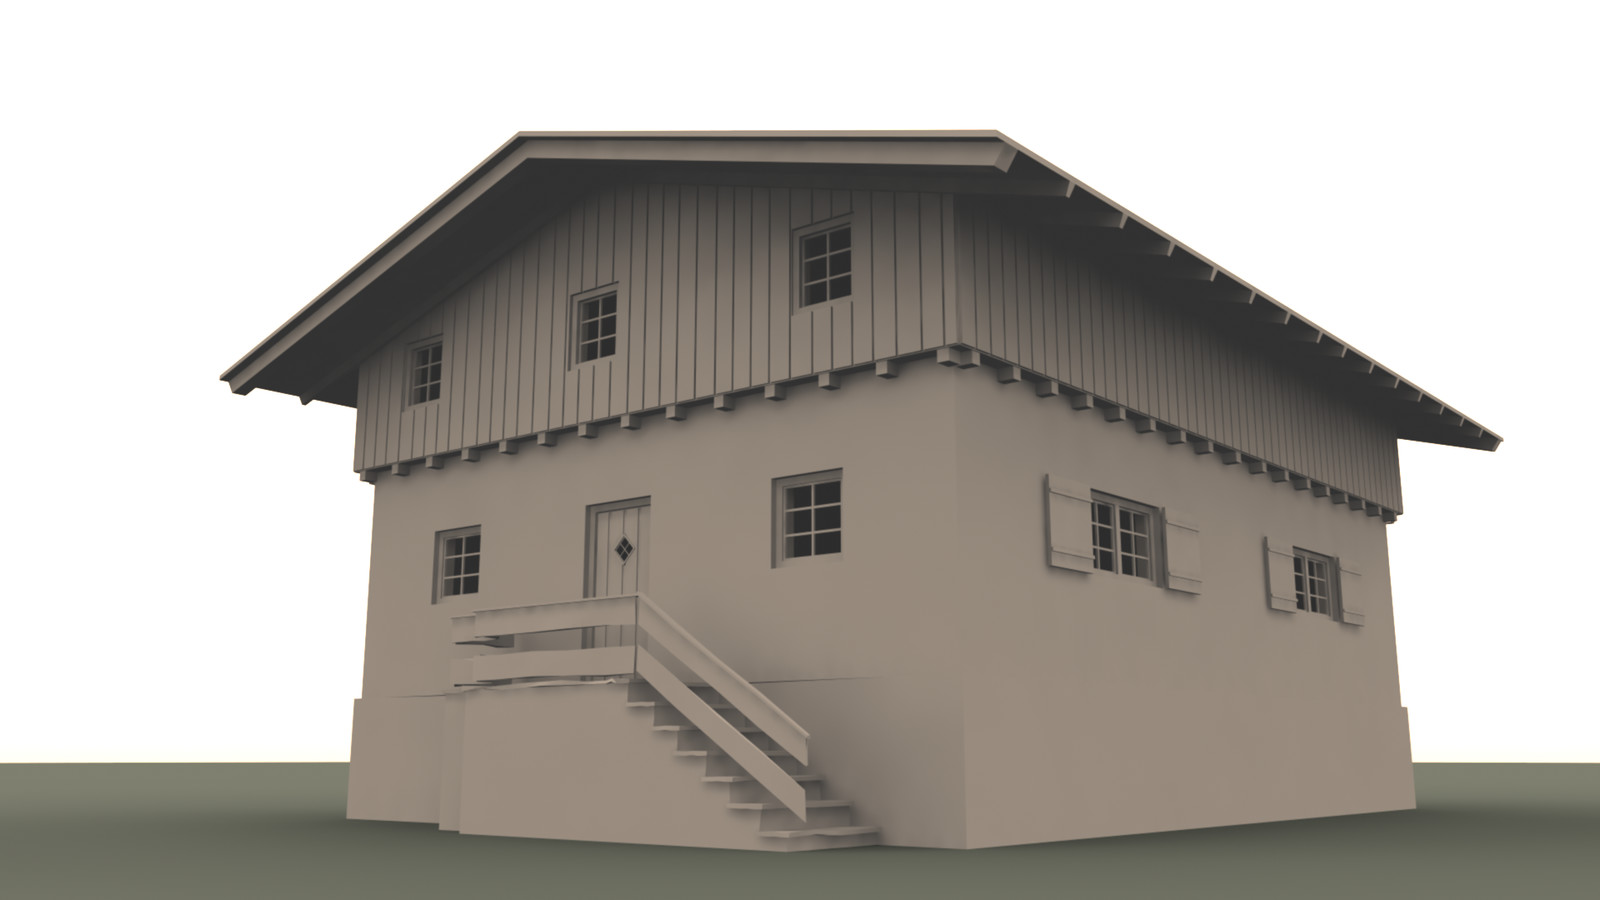 First version of the building.